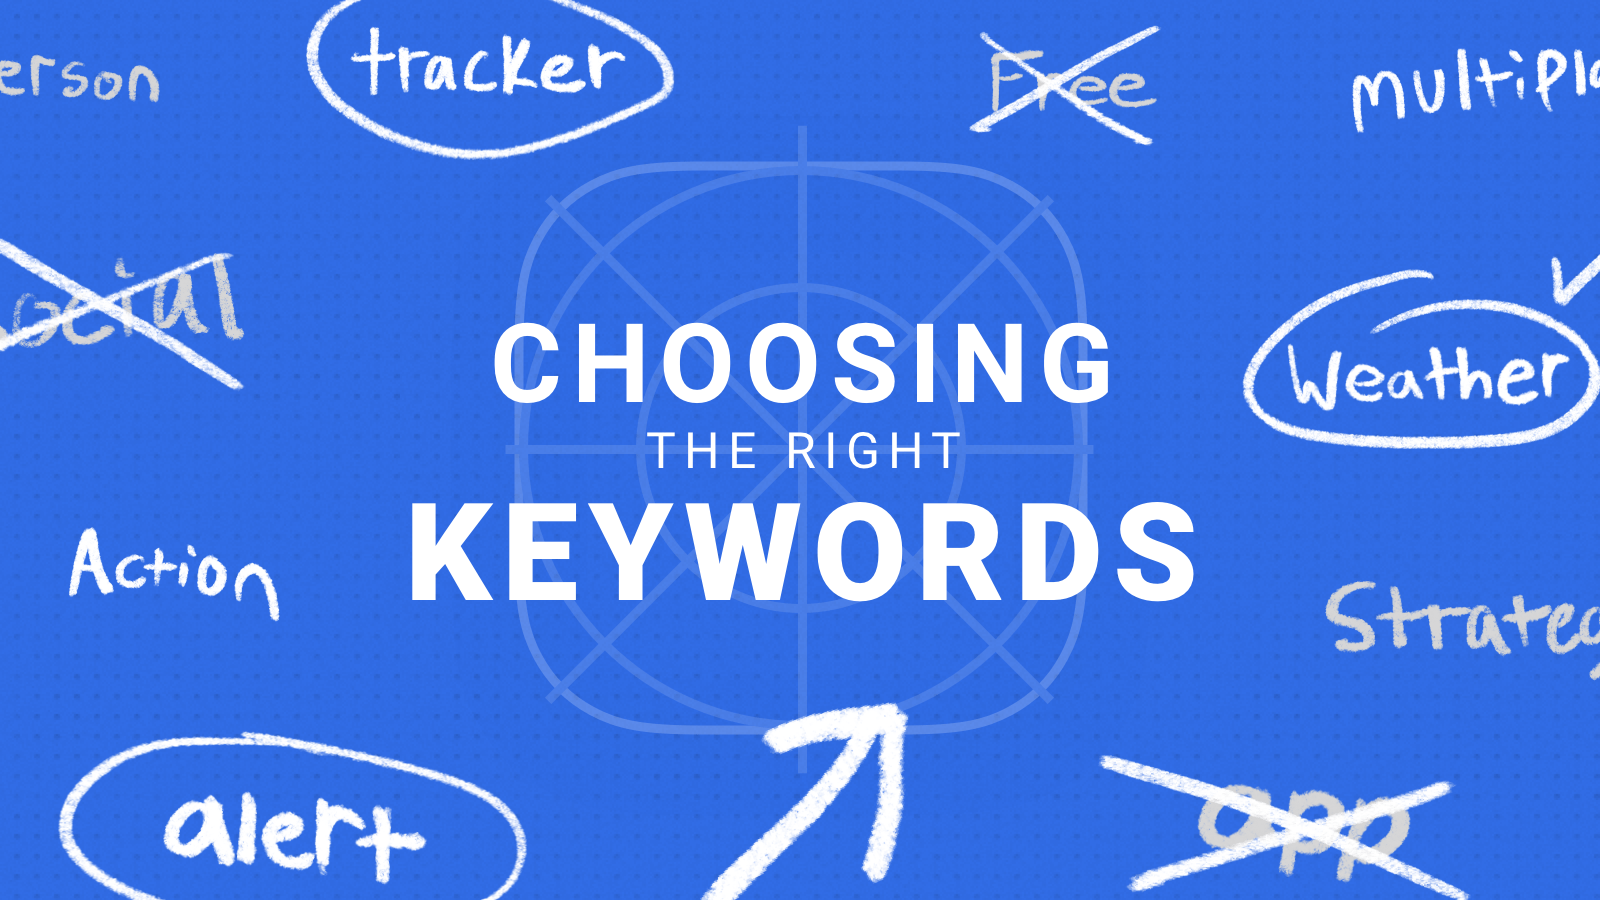 ASO Keyword Research - How to Choose Keywords that Get the Most Downloads